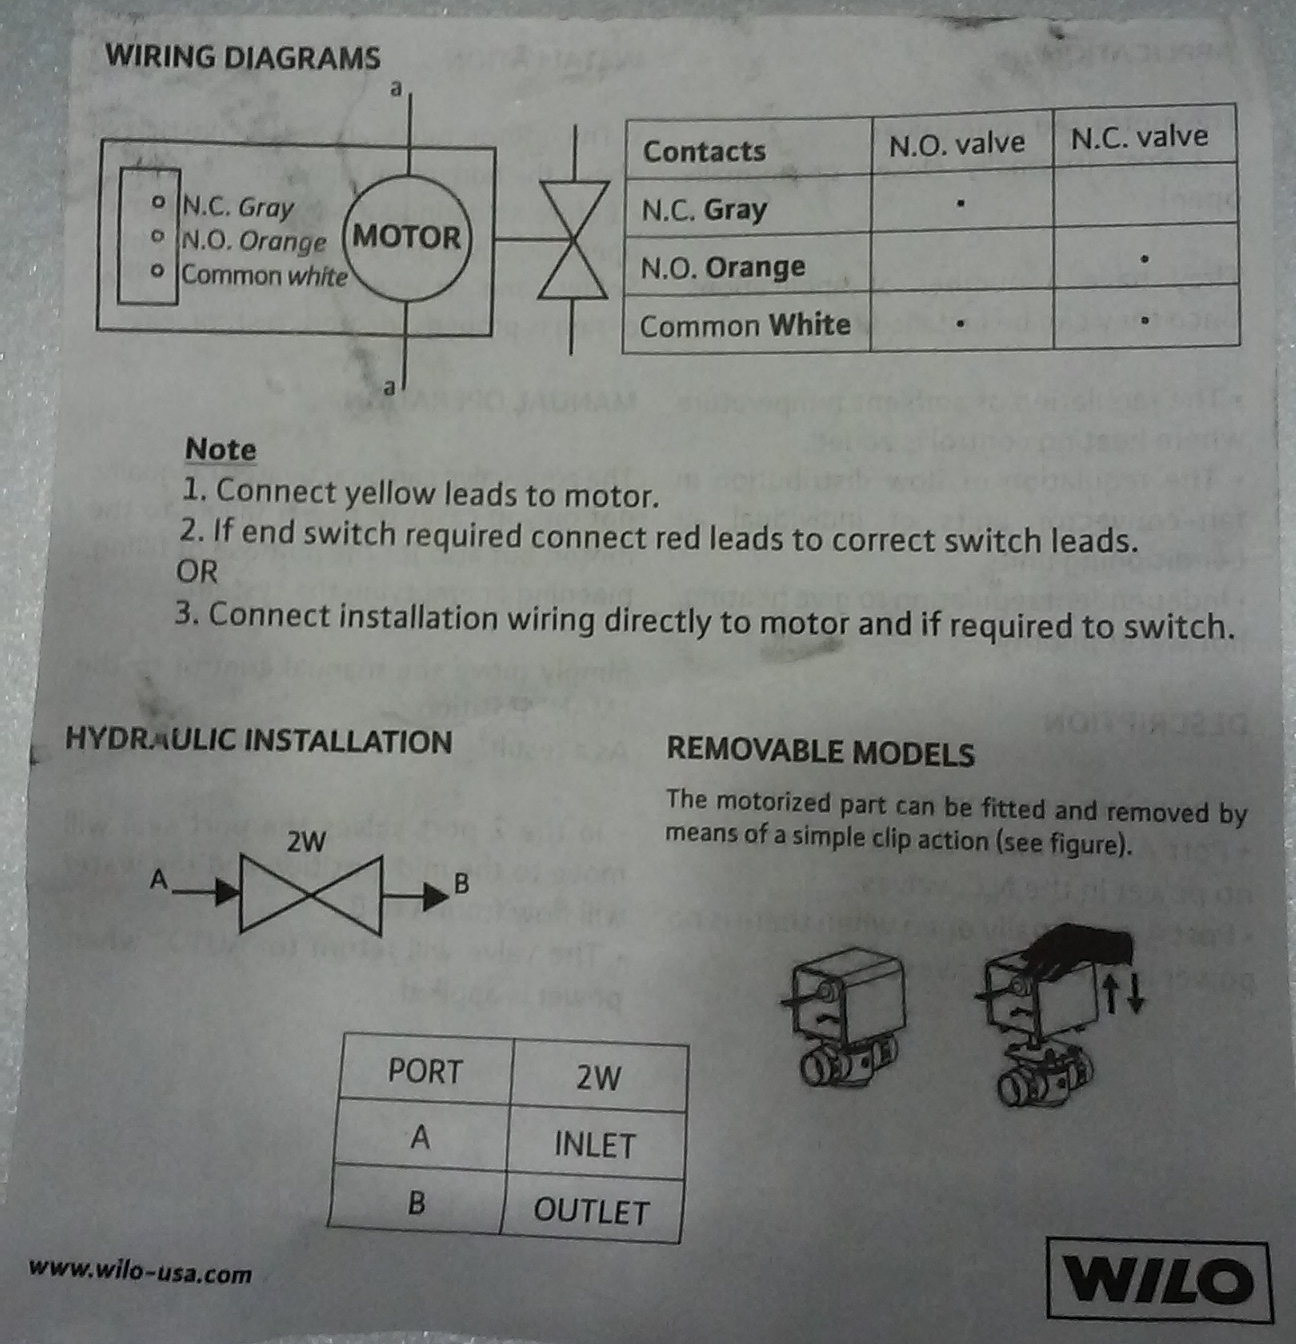 Wilo 3 Wire Zone Vale Wiring Help Heating The Wall Diagram For Motor Lead Connections B 5597k